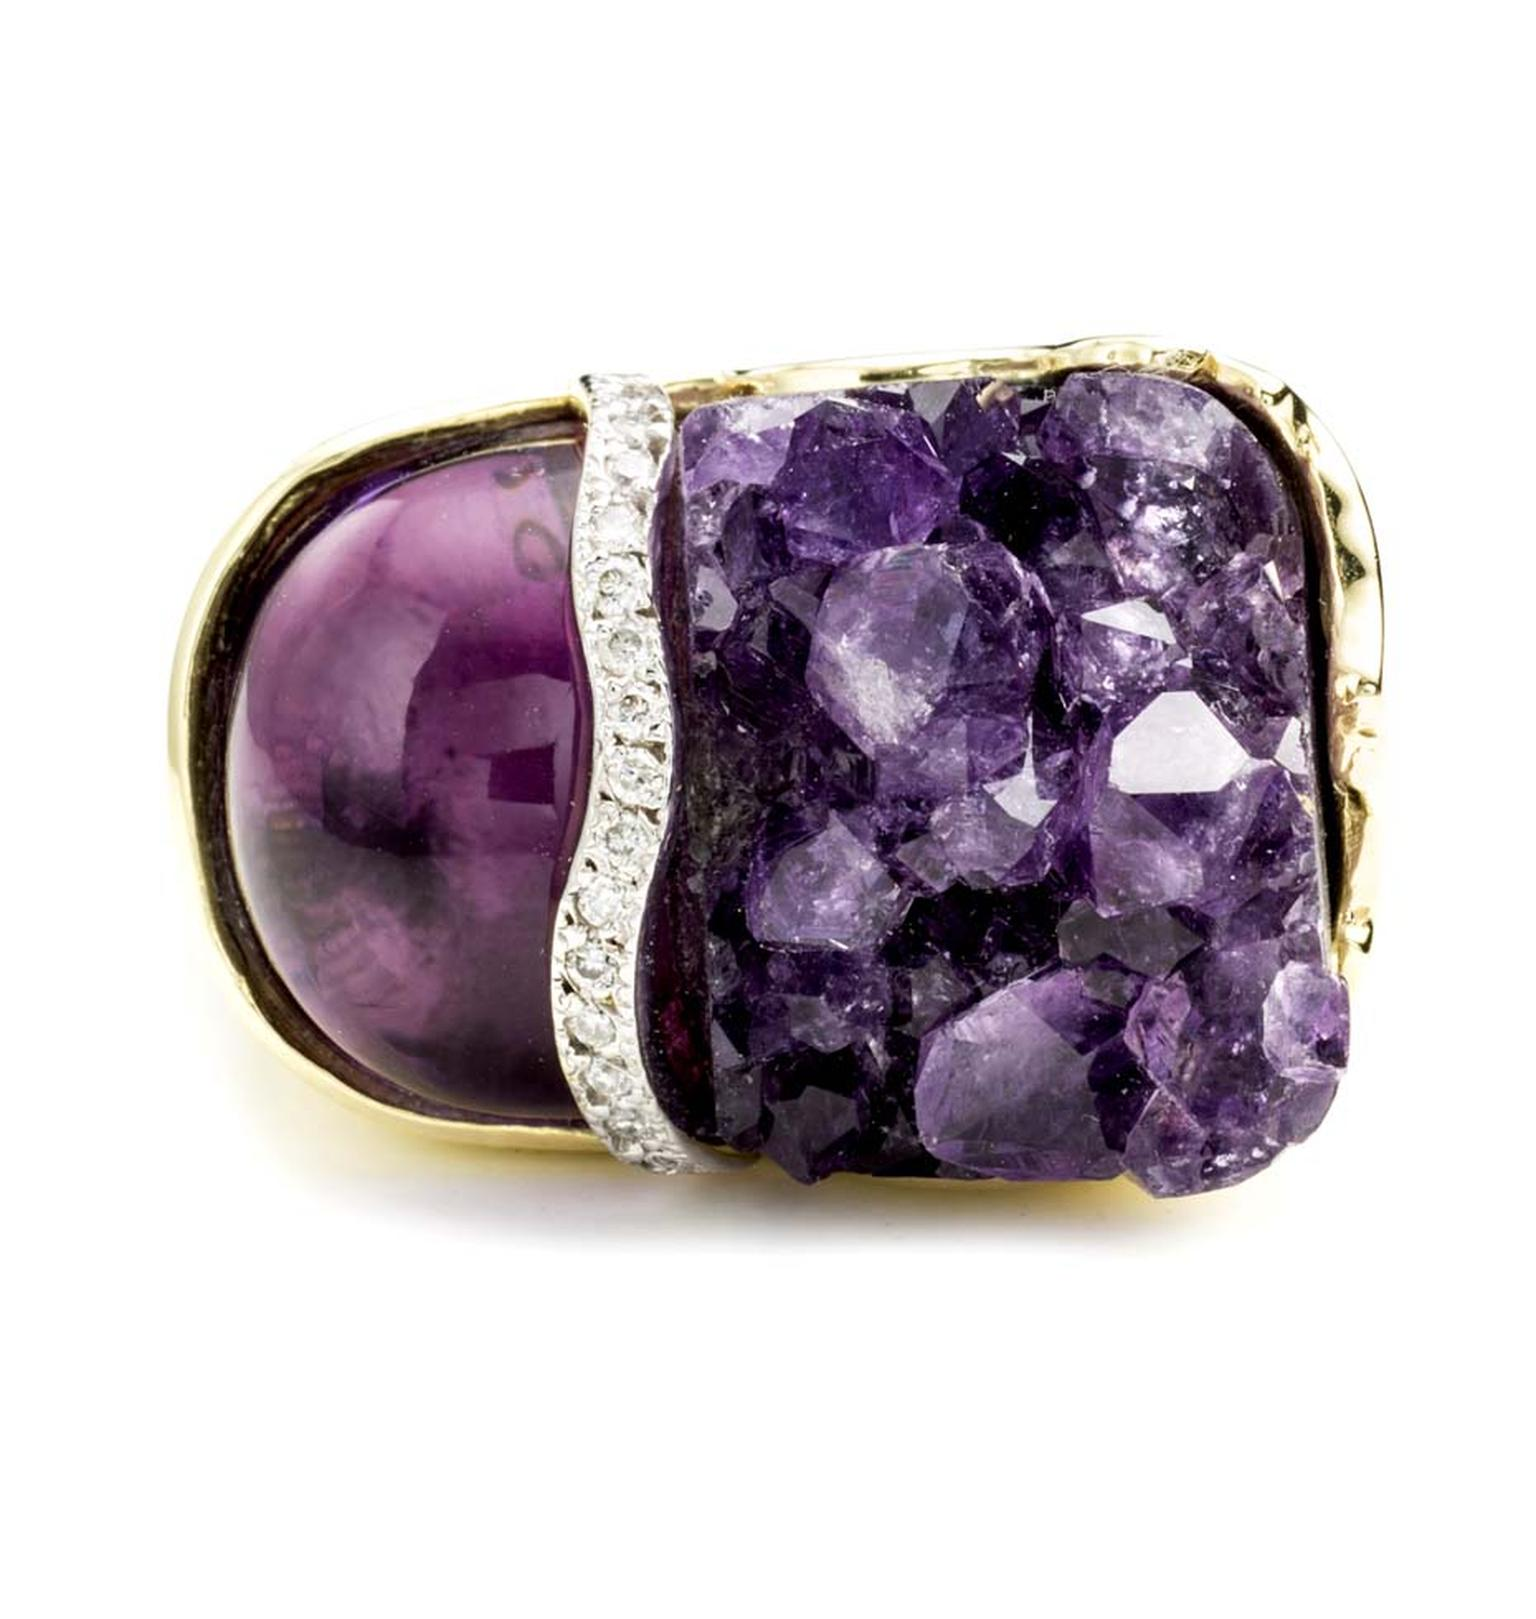 Kara Ross loves the juxtaposition of rough and smooth gemstones